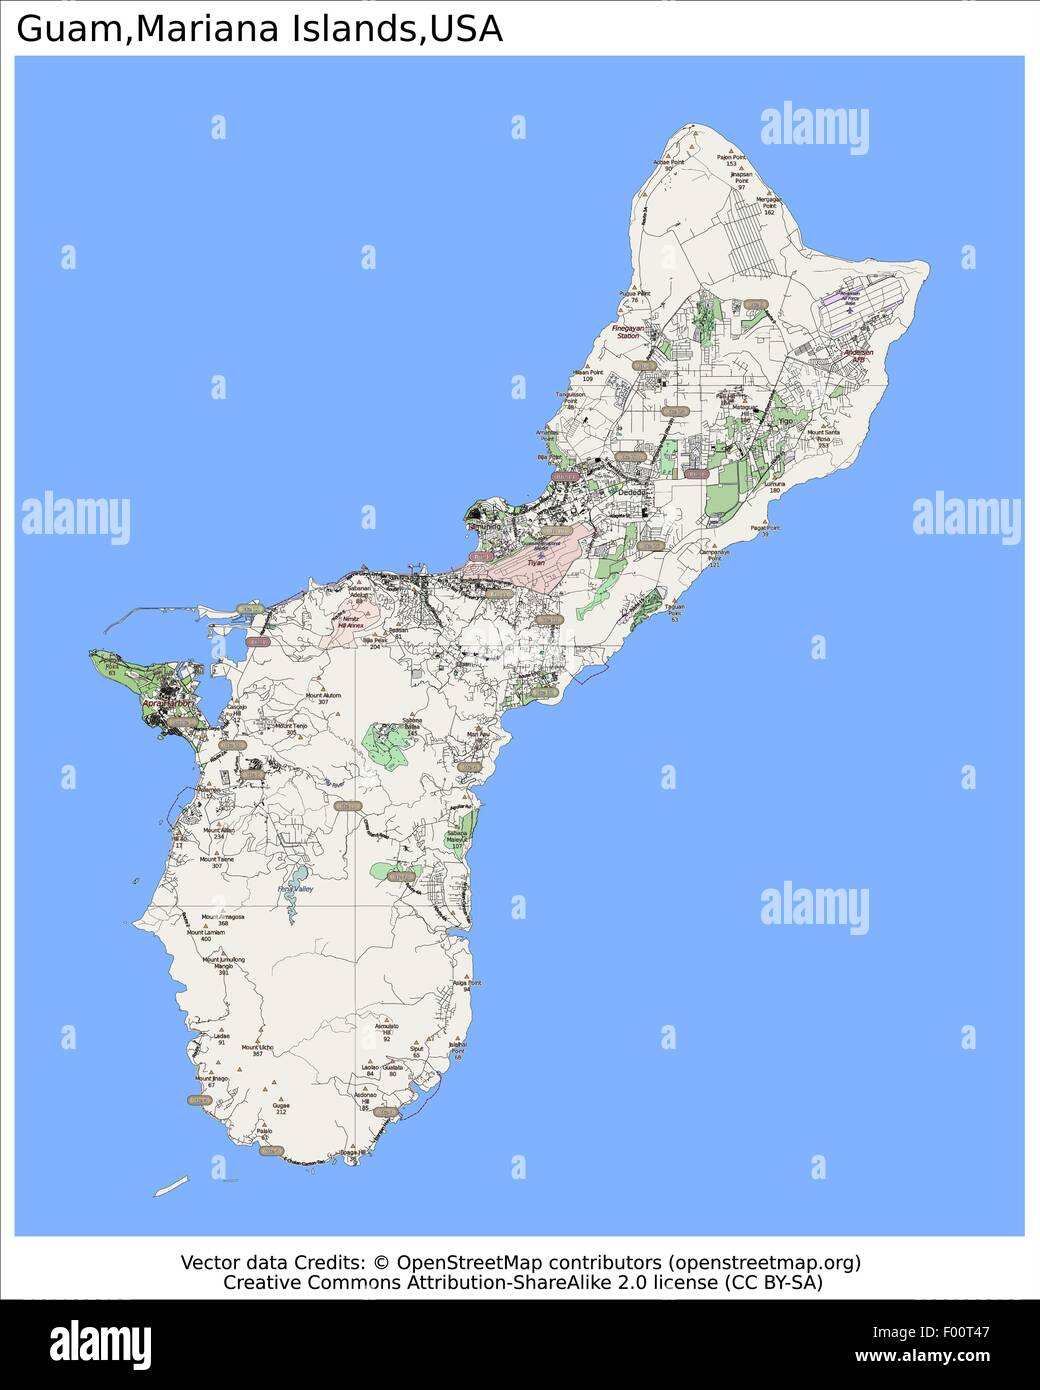 Guam Location In World Map on